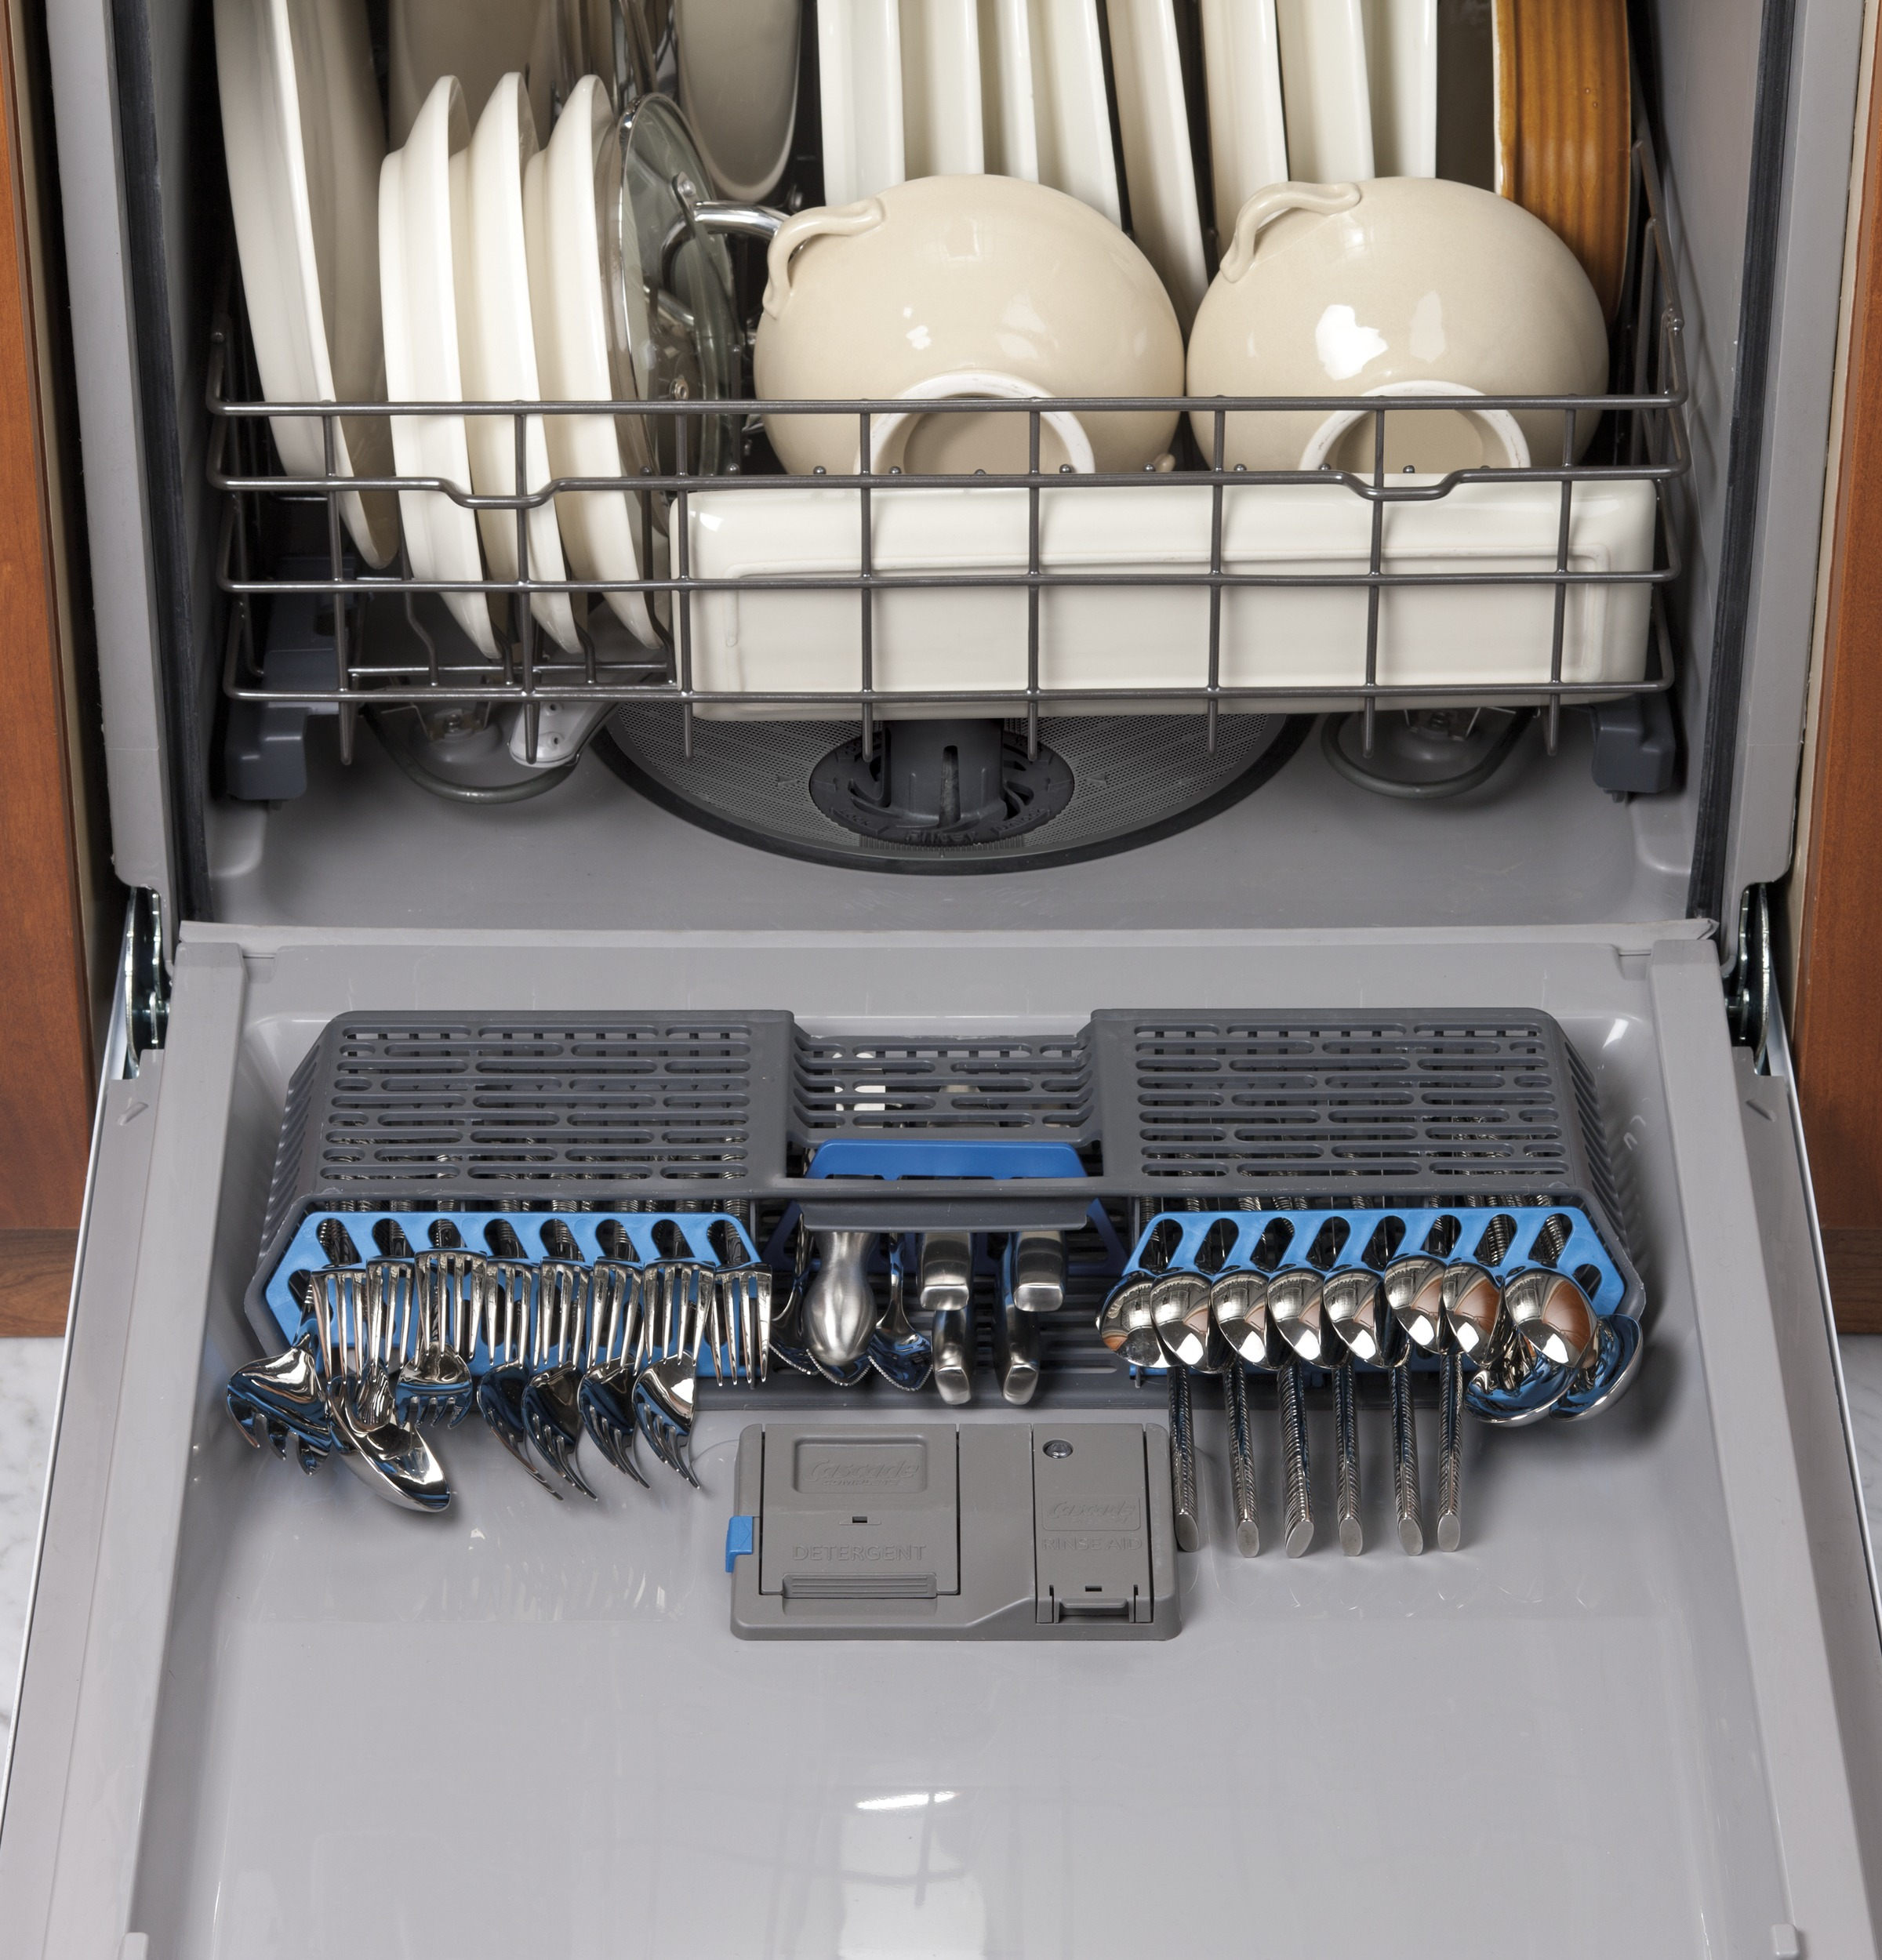 General Electric Dishwasher Troubleshooting Gear Dishwasher With Front Controls Gdf520pgdcc Ge Appliances